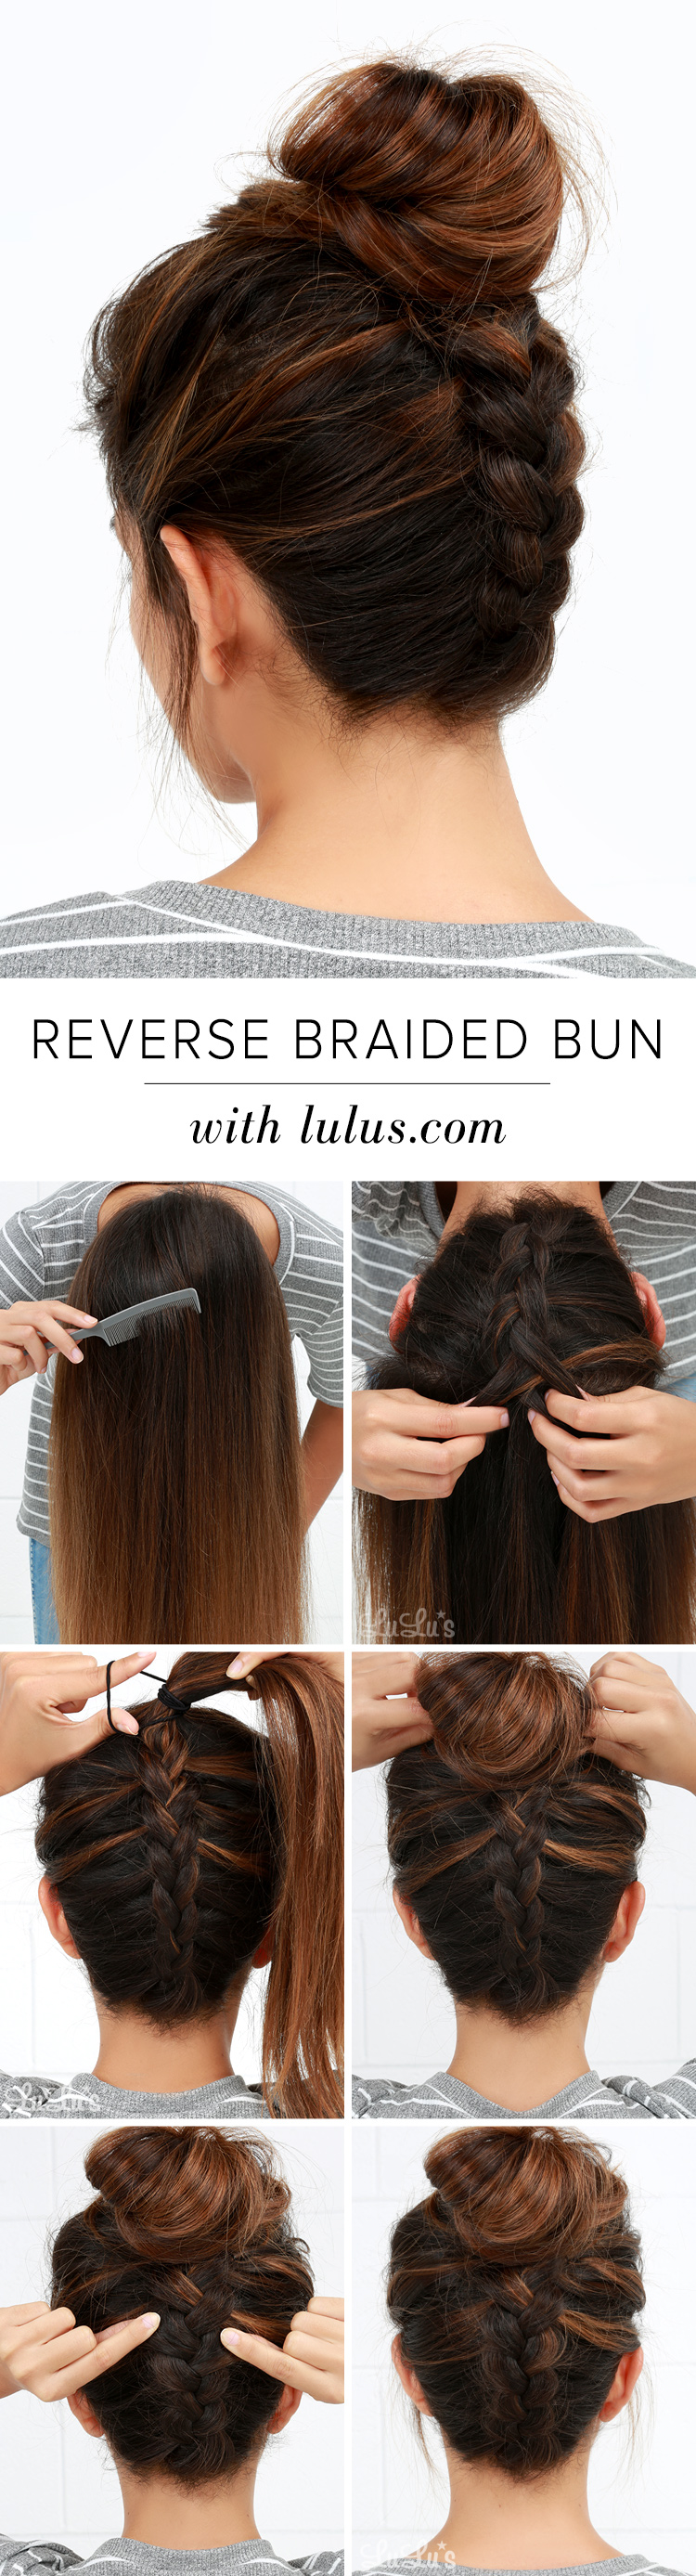 Lulus How To Reverse Braided Bun Hair Tutorial Lulus